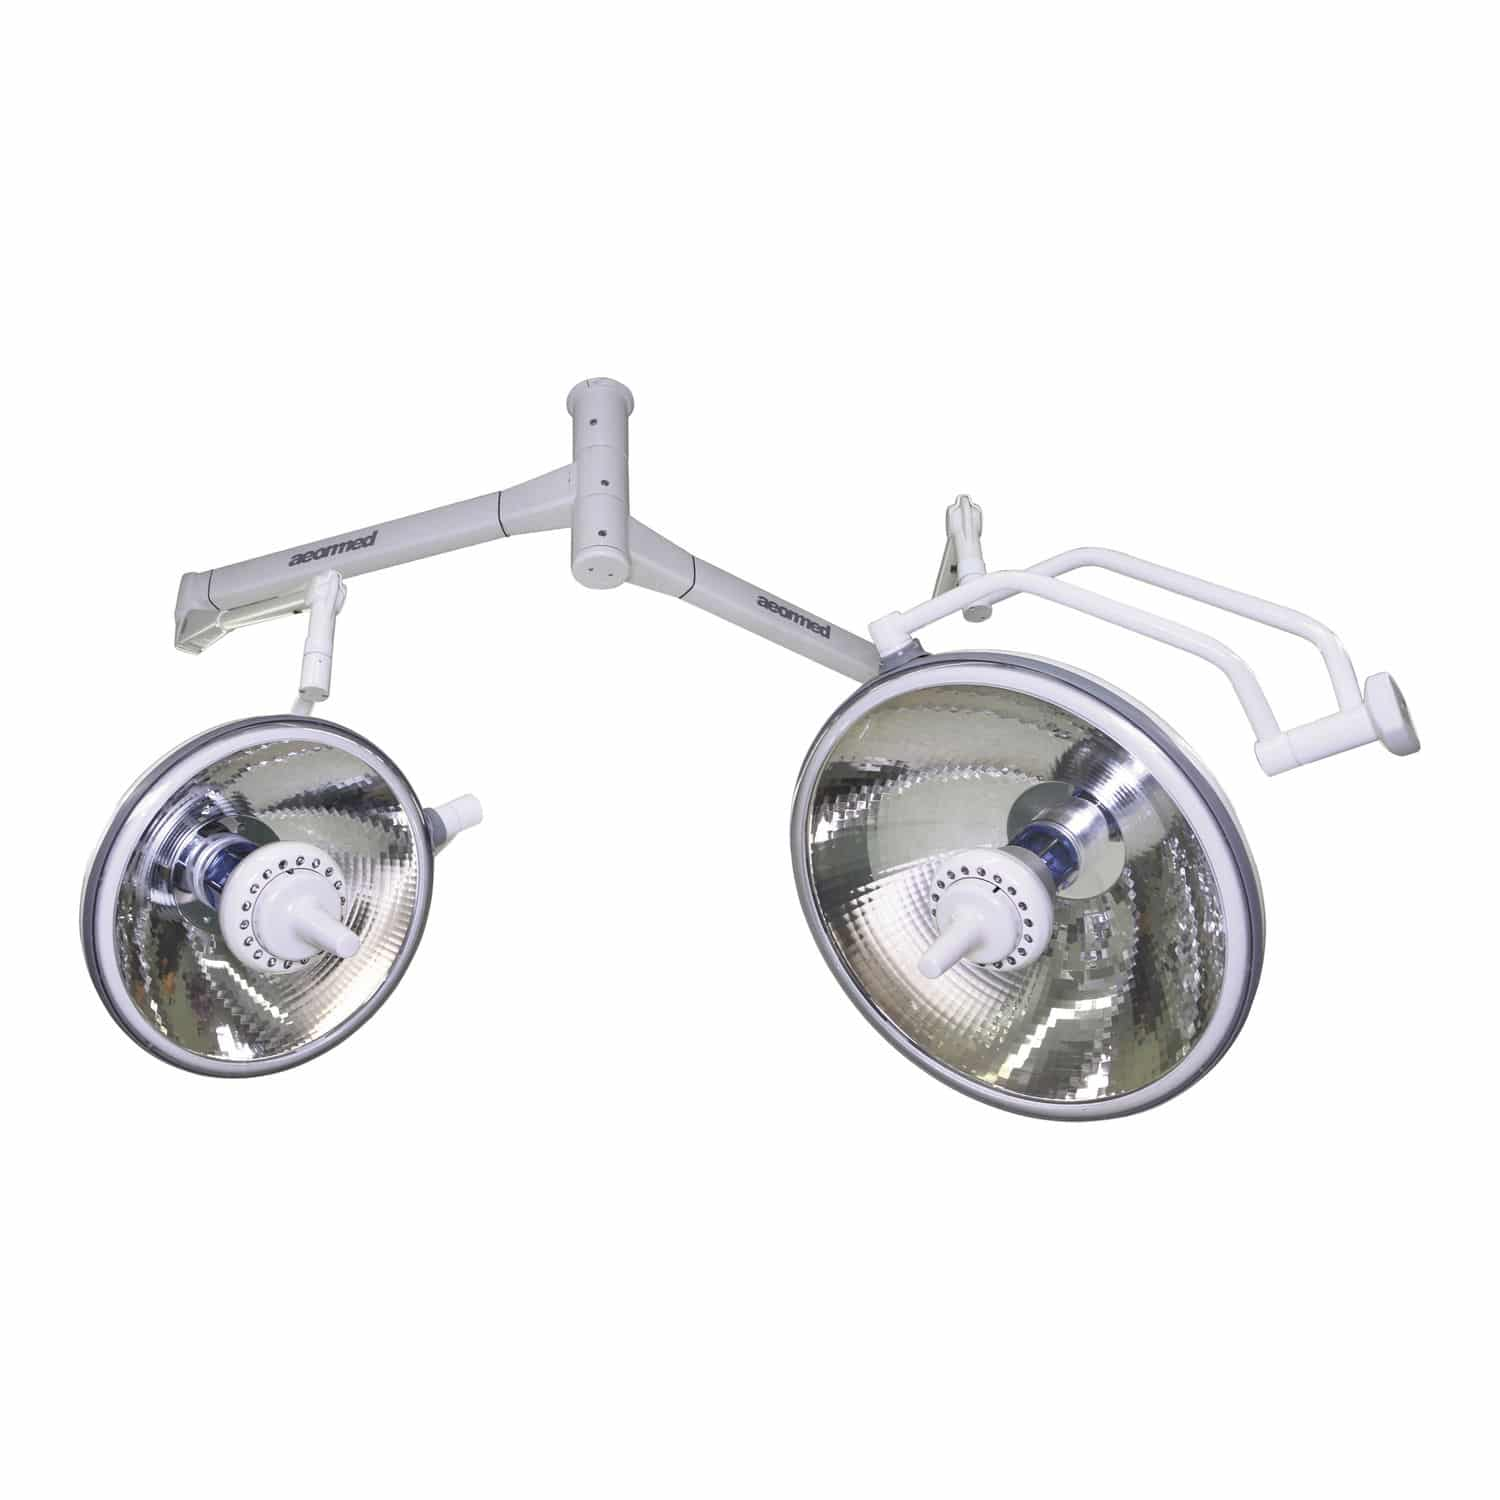 Halogenlampe Led Ceiling Mounted Surgical Light Led Halogen 2 Arm Purelit